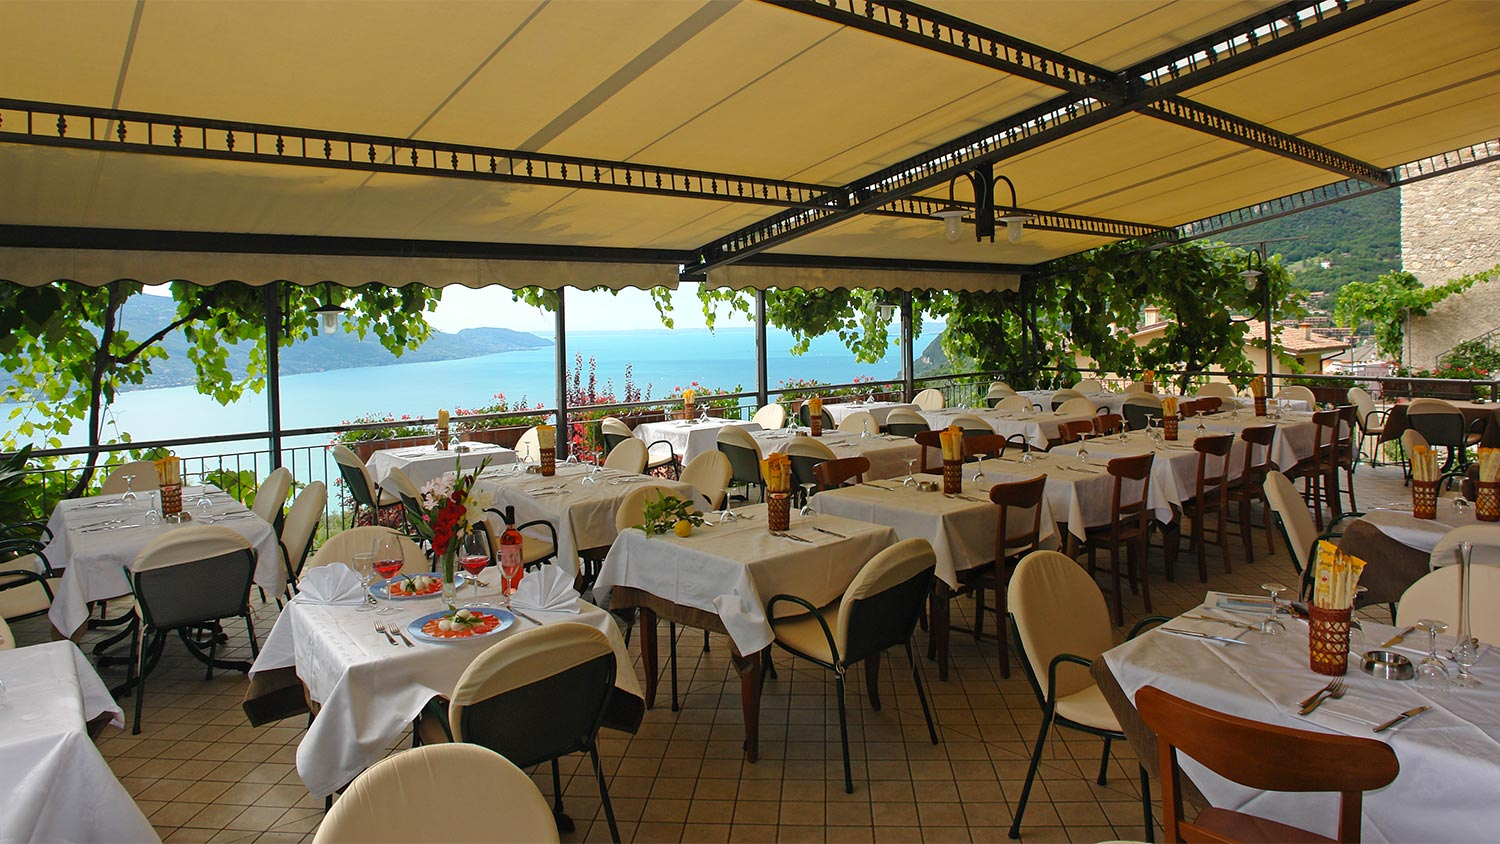 al ristorante Albona restaurant's uniqueness is derived from it's distinctive roots in the european town of albona, istria, built on a high hill overlooking the gateway of the adriatic sea, sharing cultural and political soils with croatia, slovenia and italy.